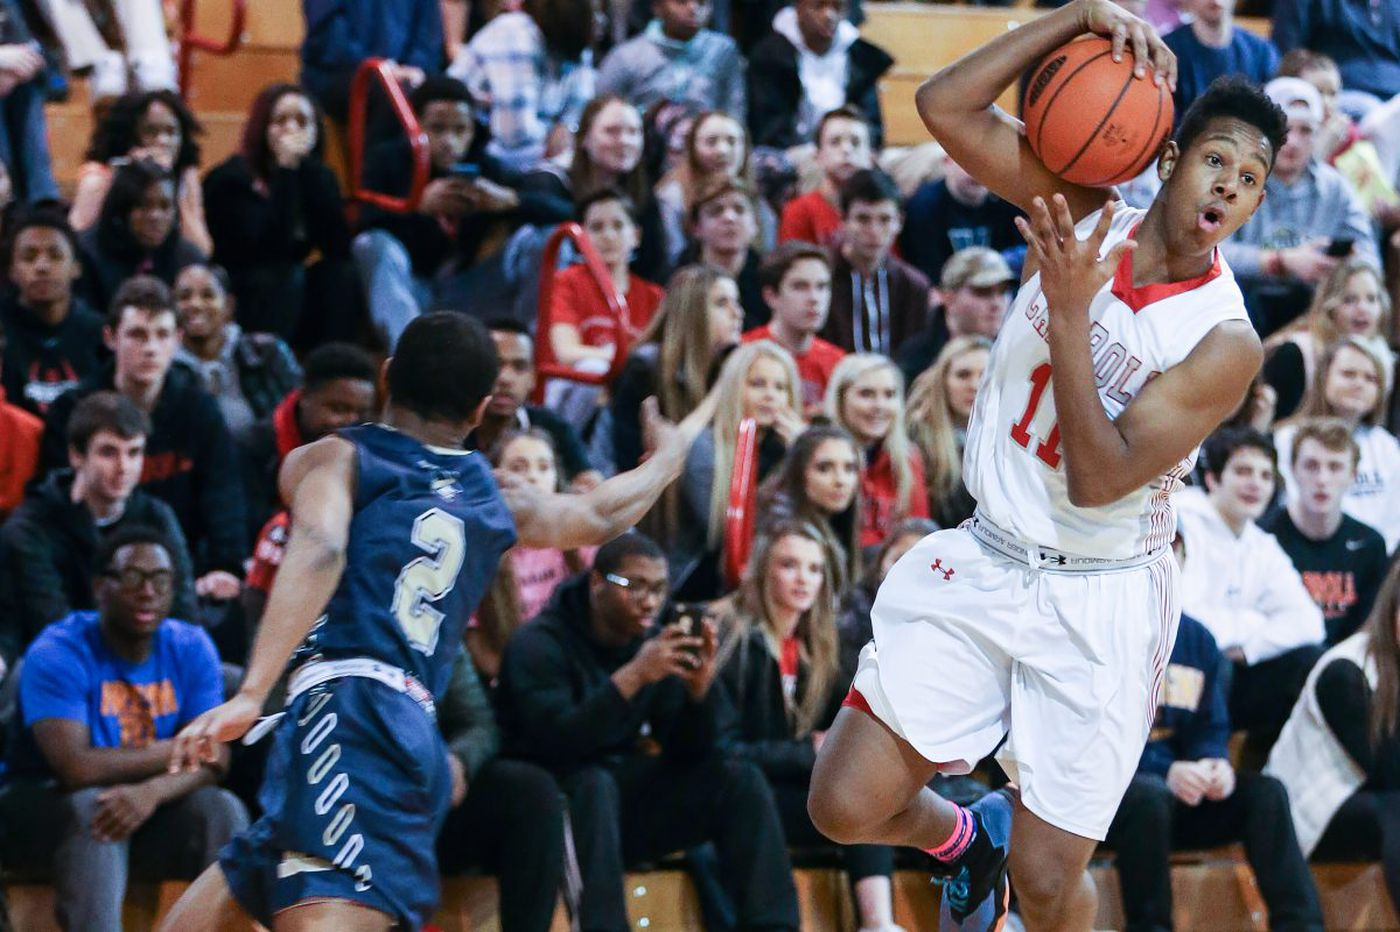 Archbishop Carroll and A.J. Hoggard roll past Archbishop Wood and back to the Palestra